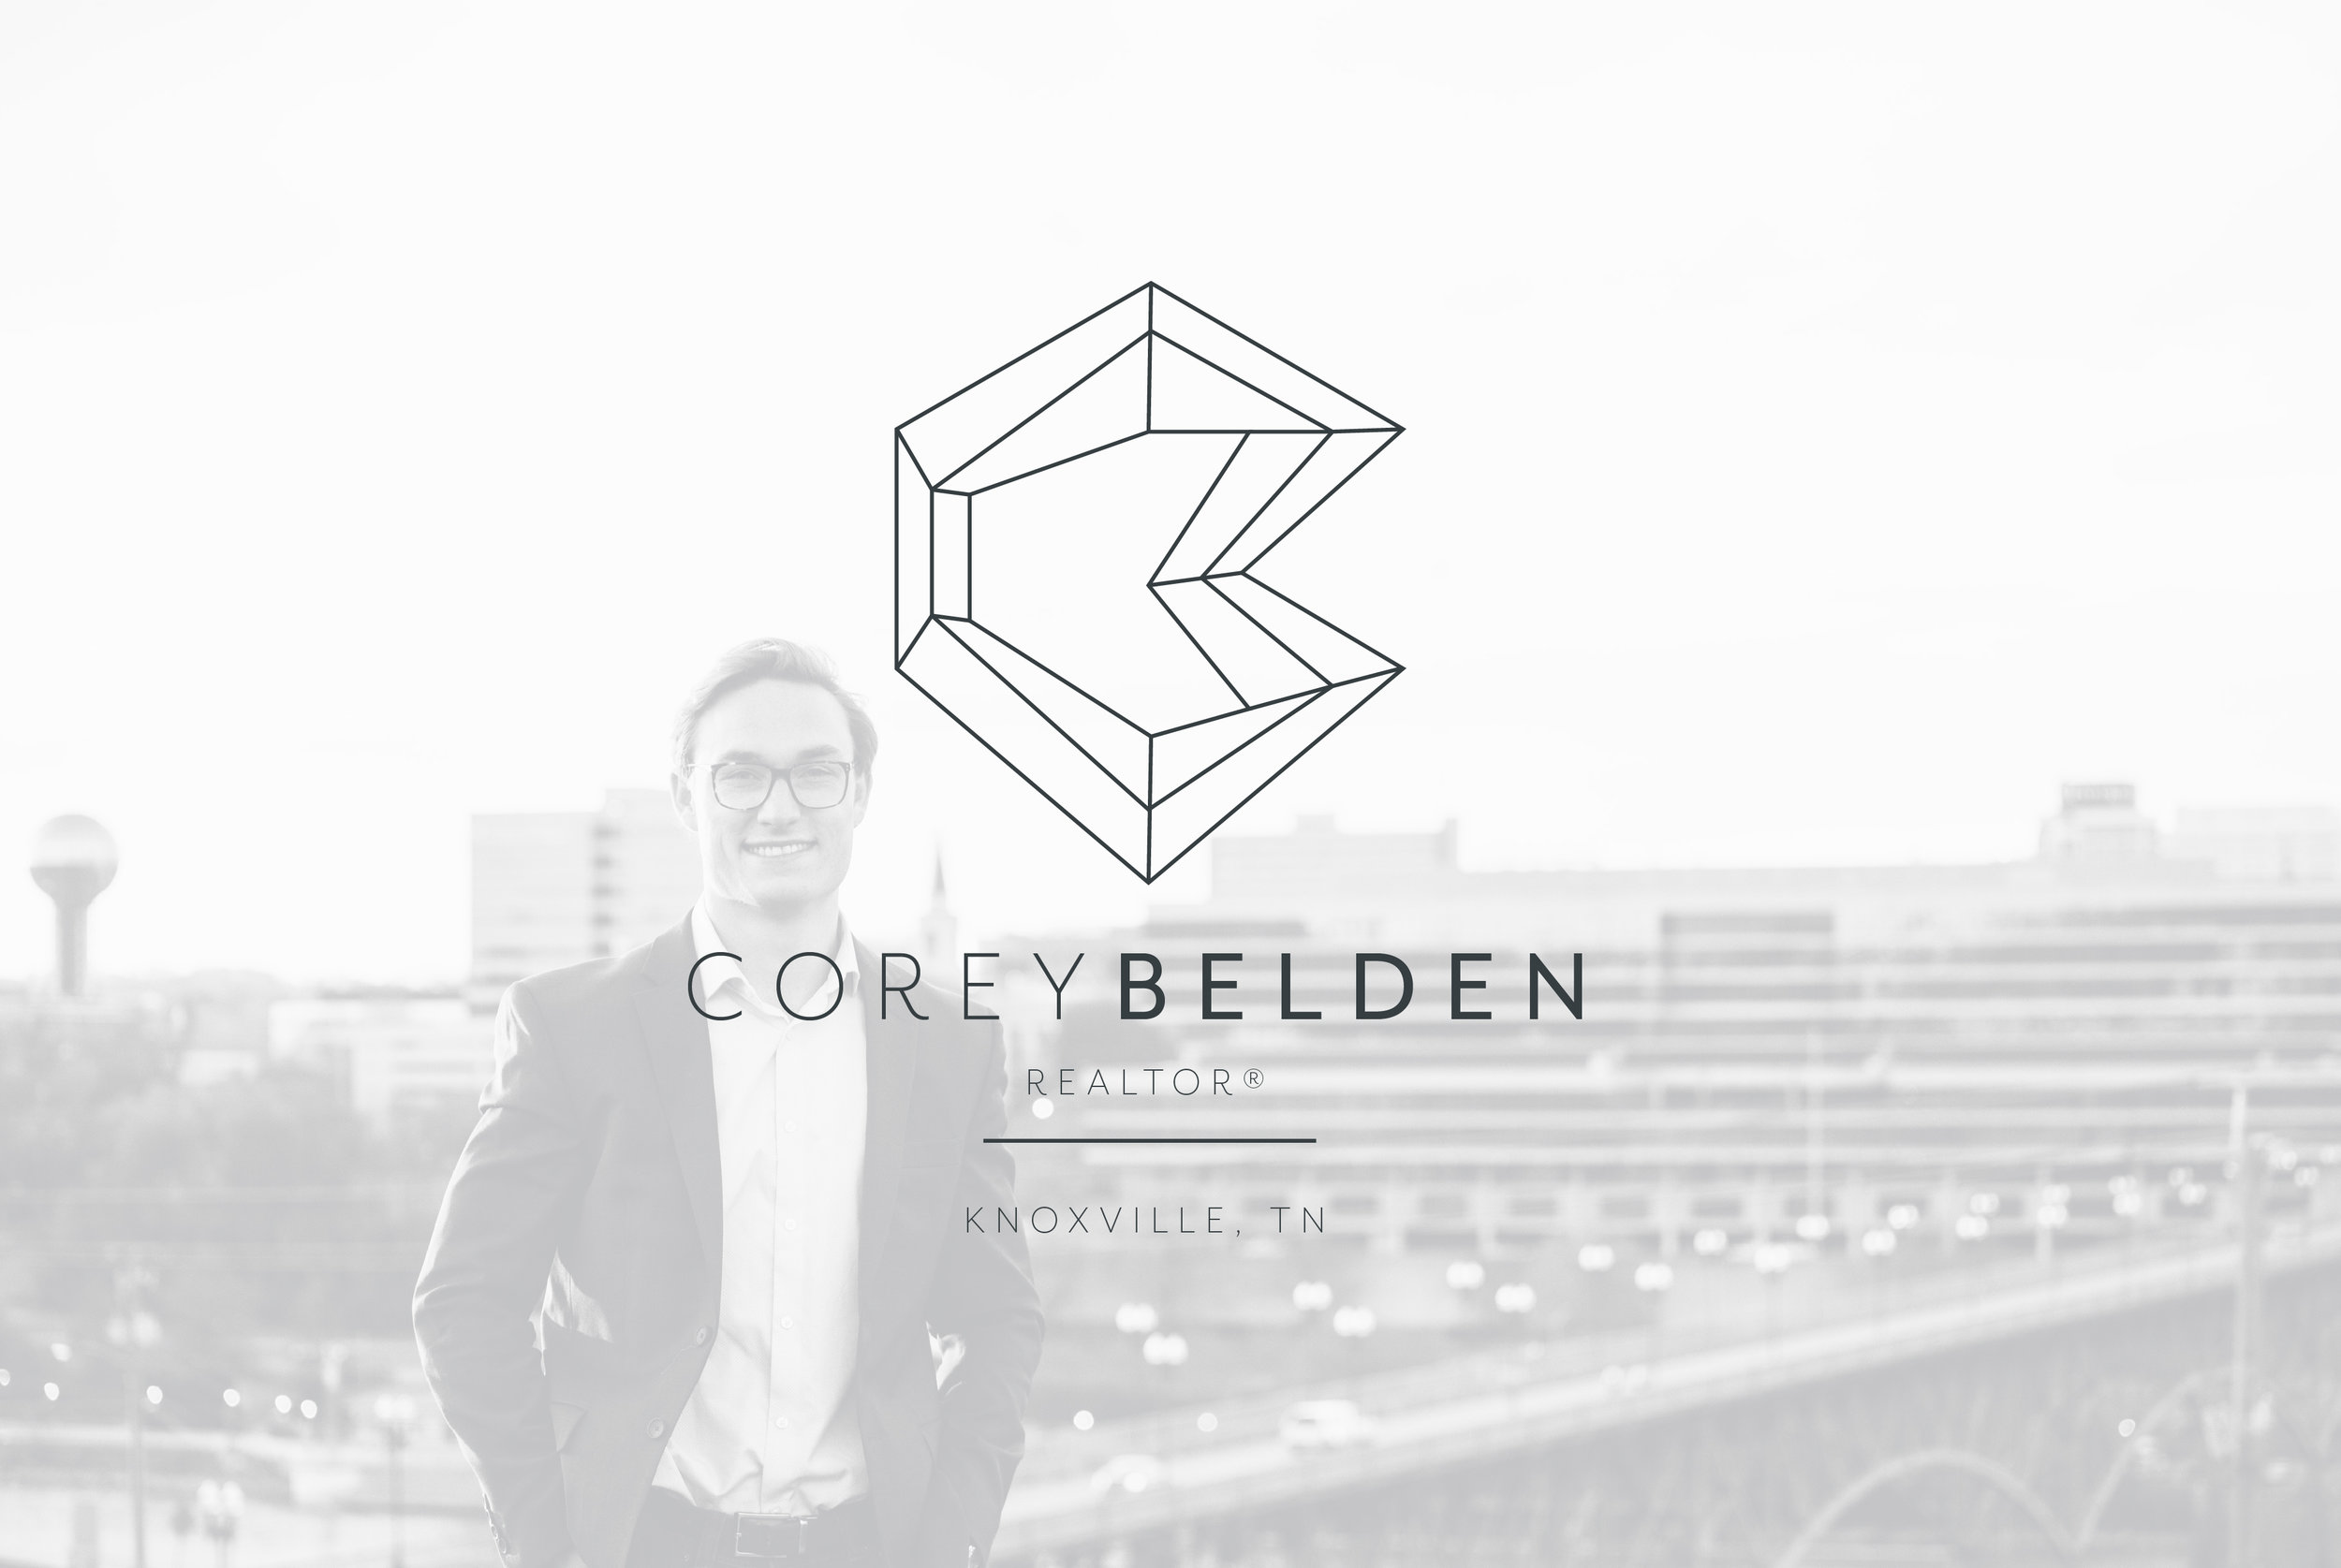 - COREY BELDENvisual branding, collateral design, print sourcing, brand photography, web design, client gifts